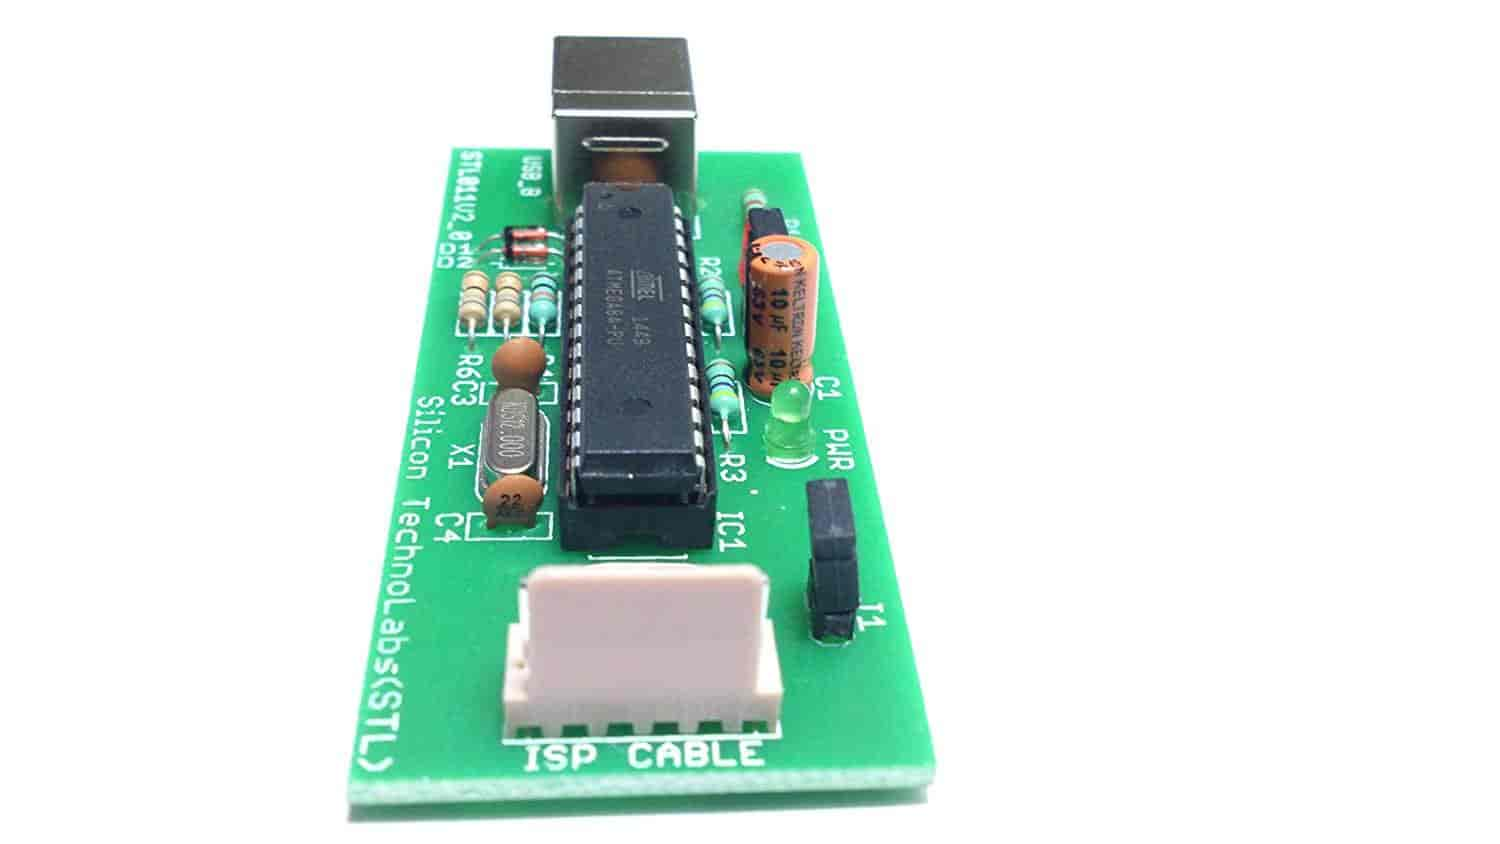 Buy Silicon Technolabs Atmel 8051 Avr Usb Isp Programmer Support For Microcontrollers At89s51at89s52at89sxxatmel